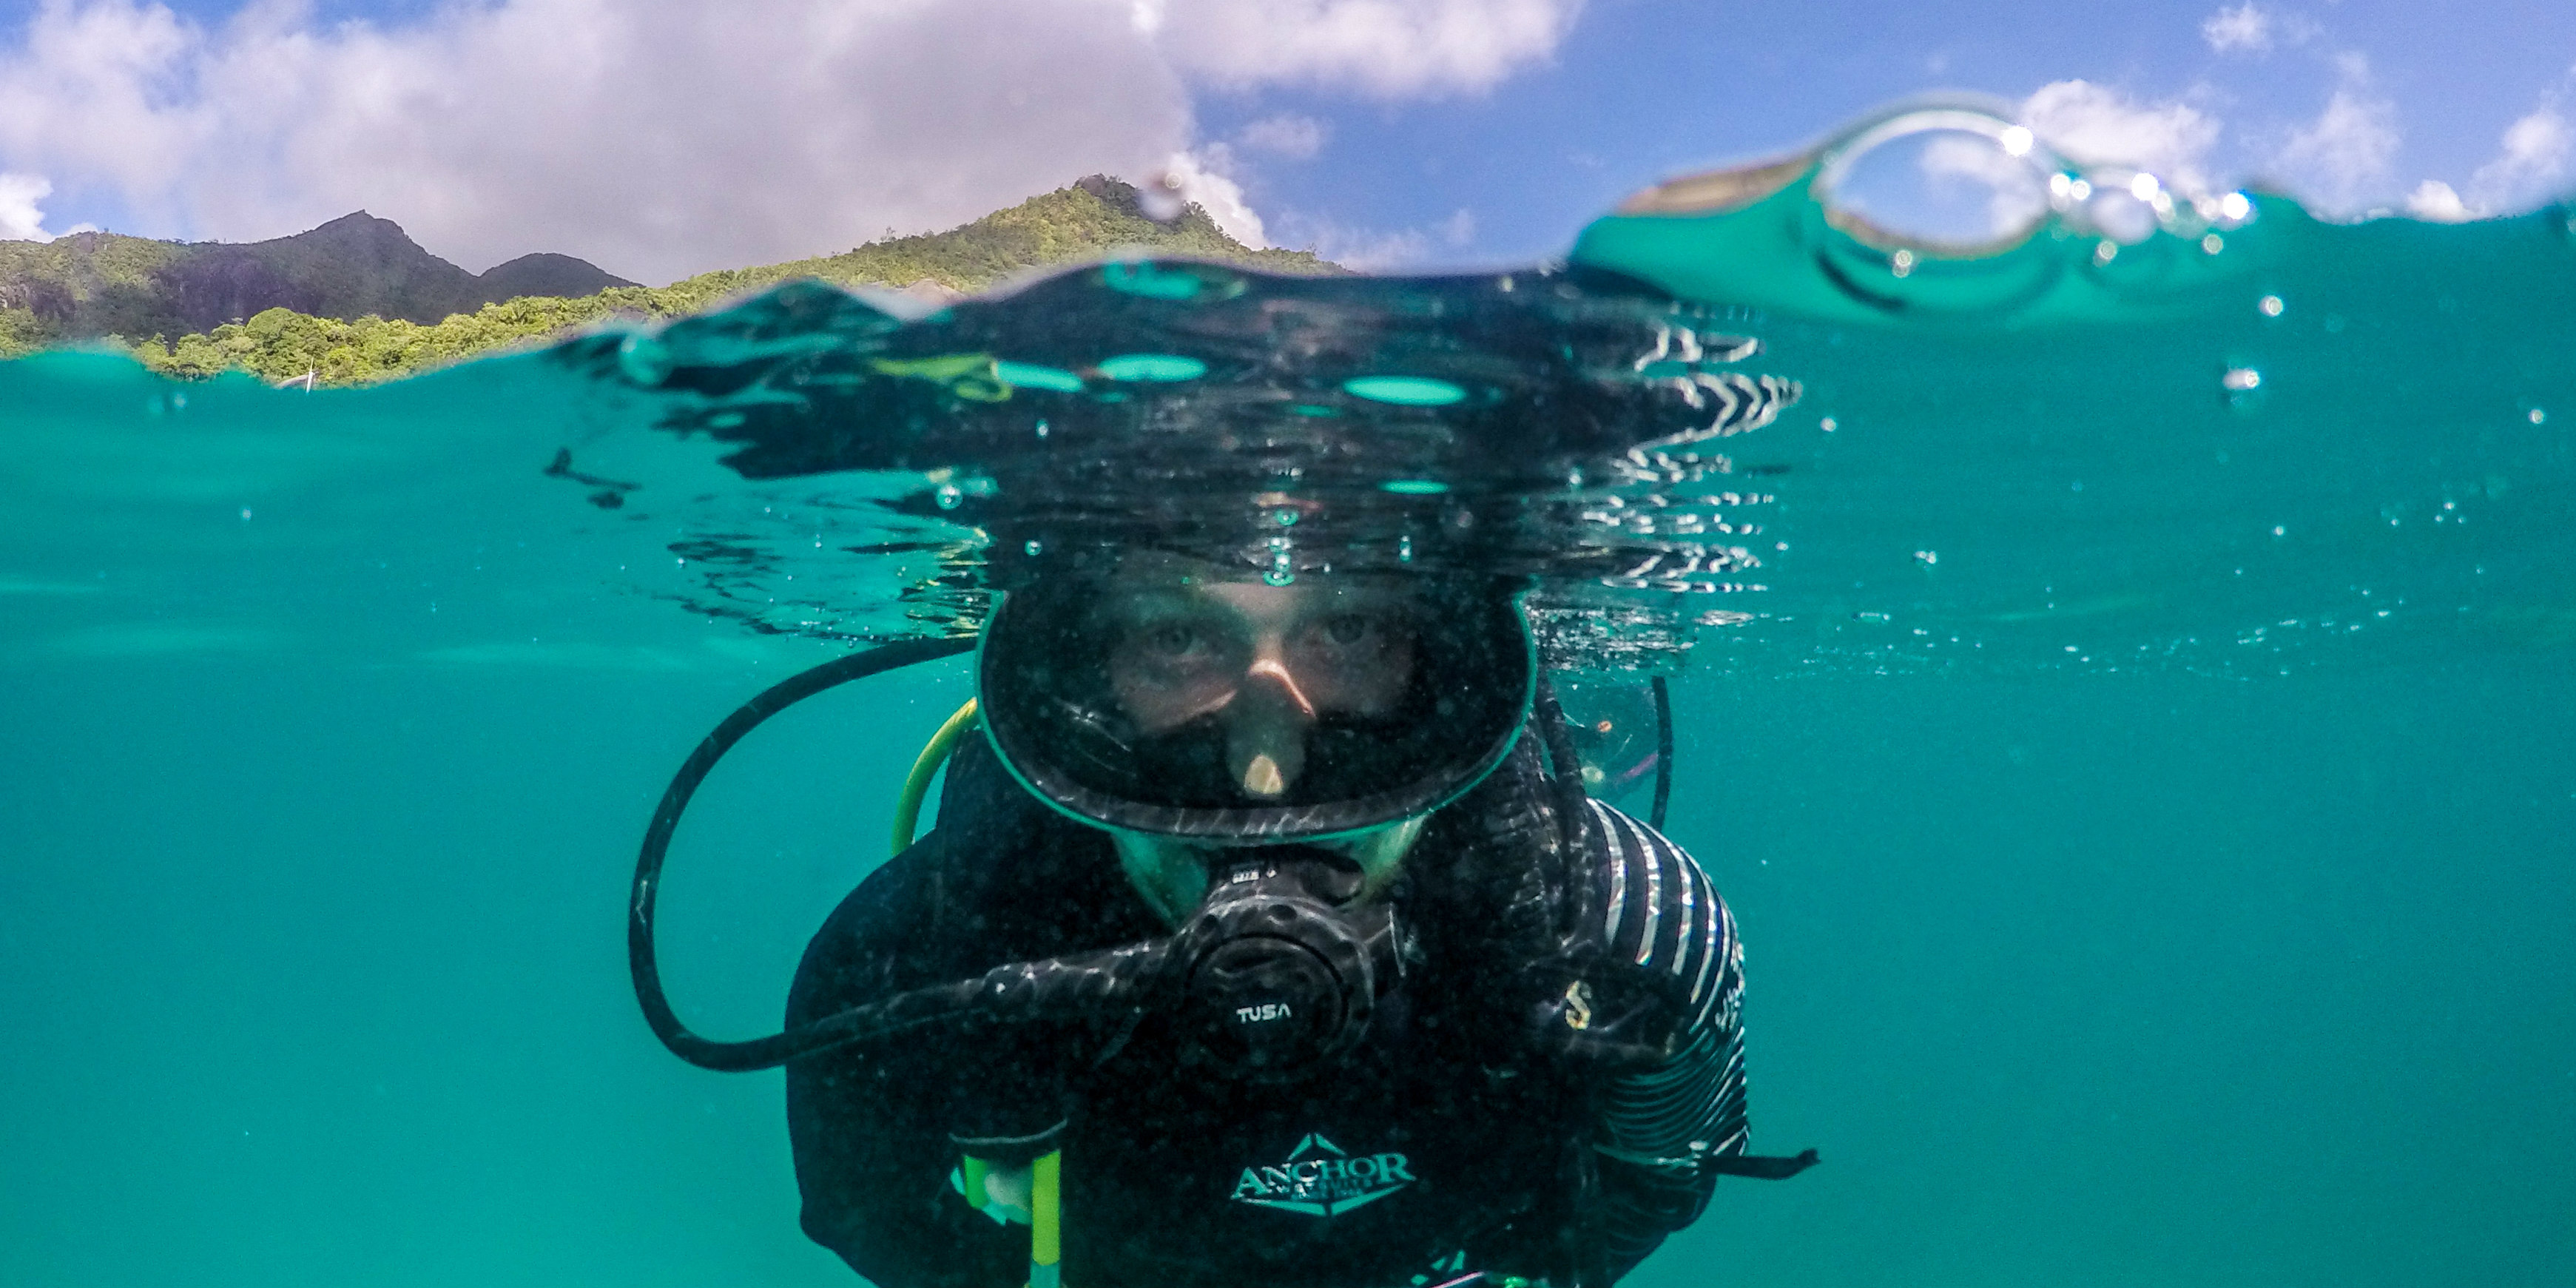 Becoming a PADI certified diver ensures you explore sensitive marine environments responsibly and safely. Pictured: A GVI participant practices diving skills on a marine conservation base.